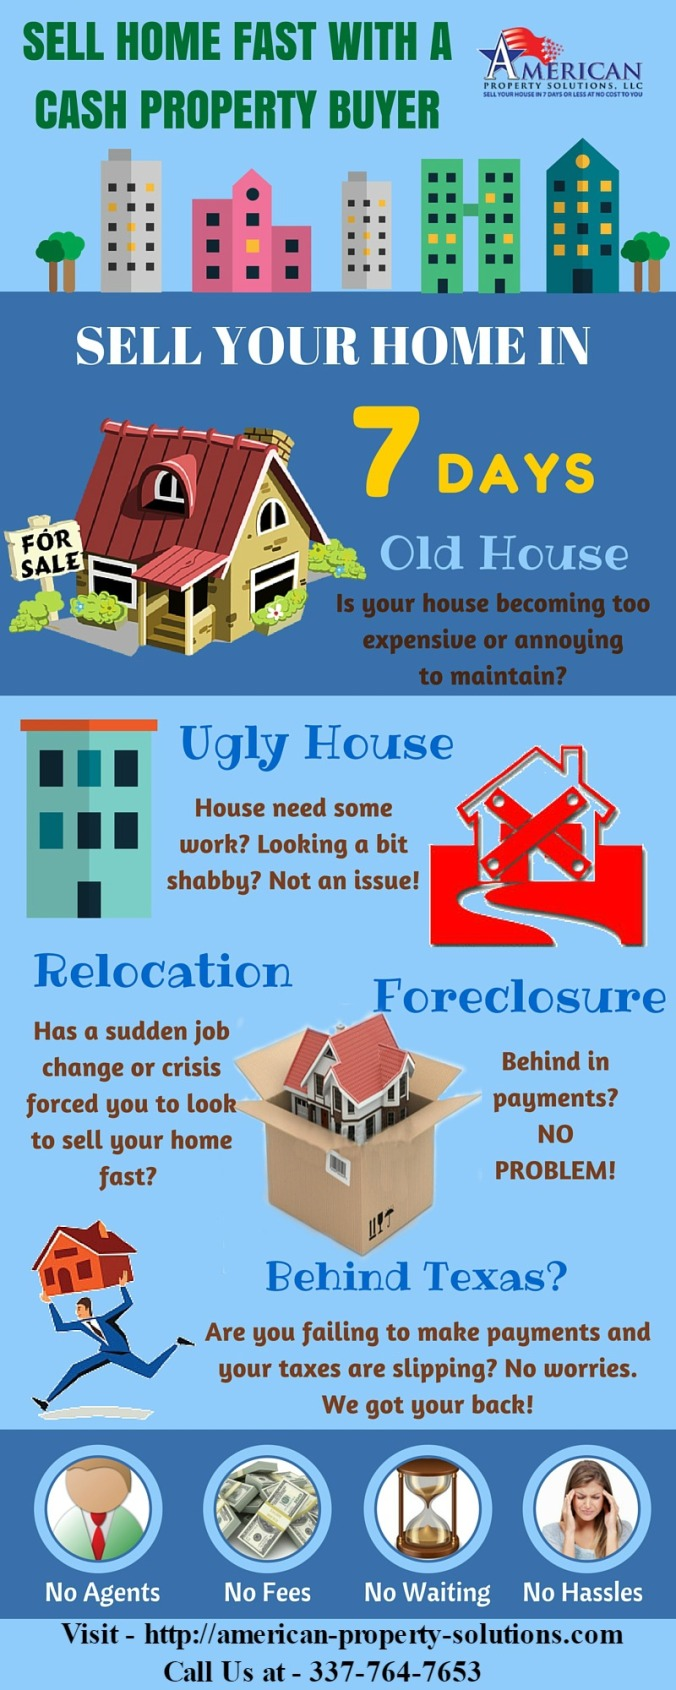 We Buy Ugly Houses in Lake Charles.jpg